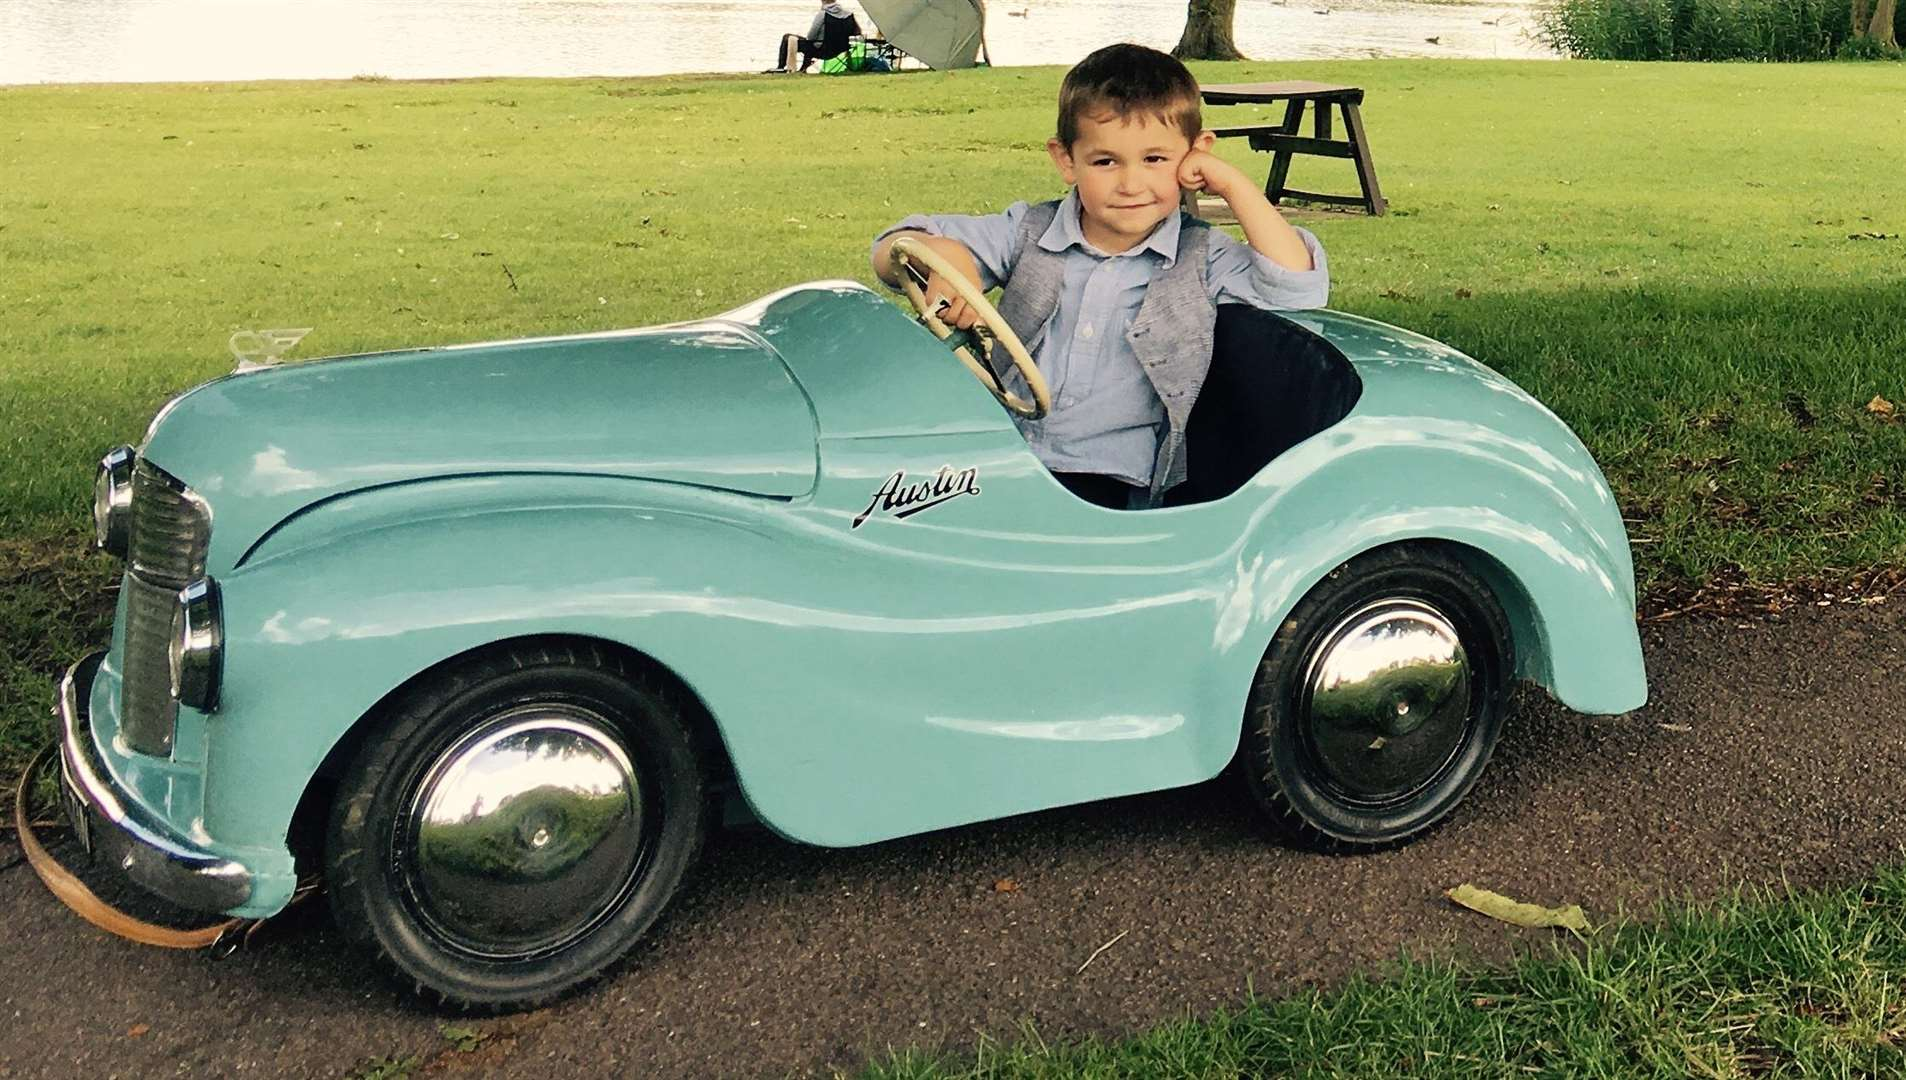 FIVE MINUTES OF FAME: Joshua Vincent and his Austin J40 pedal car.